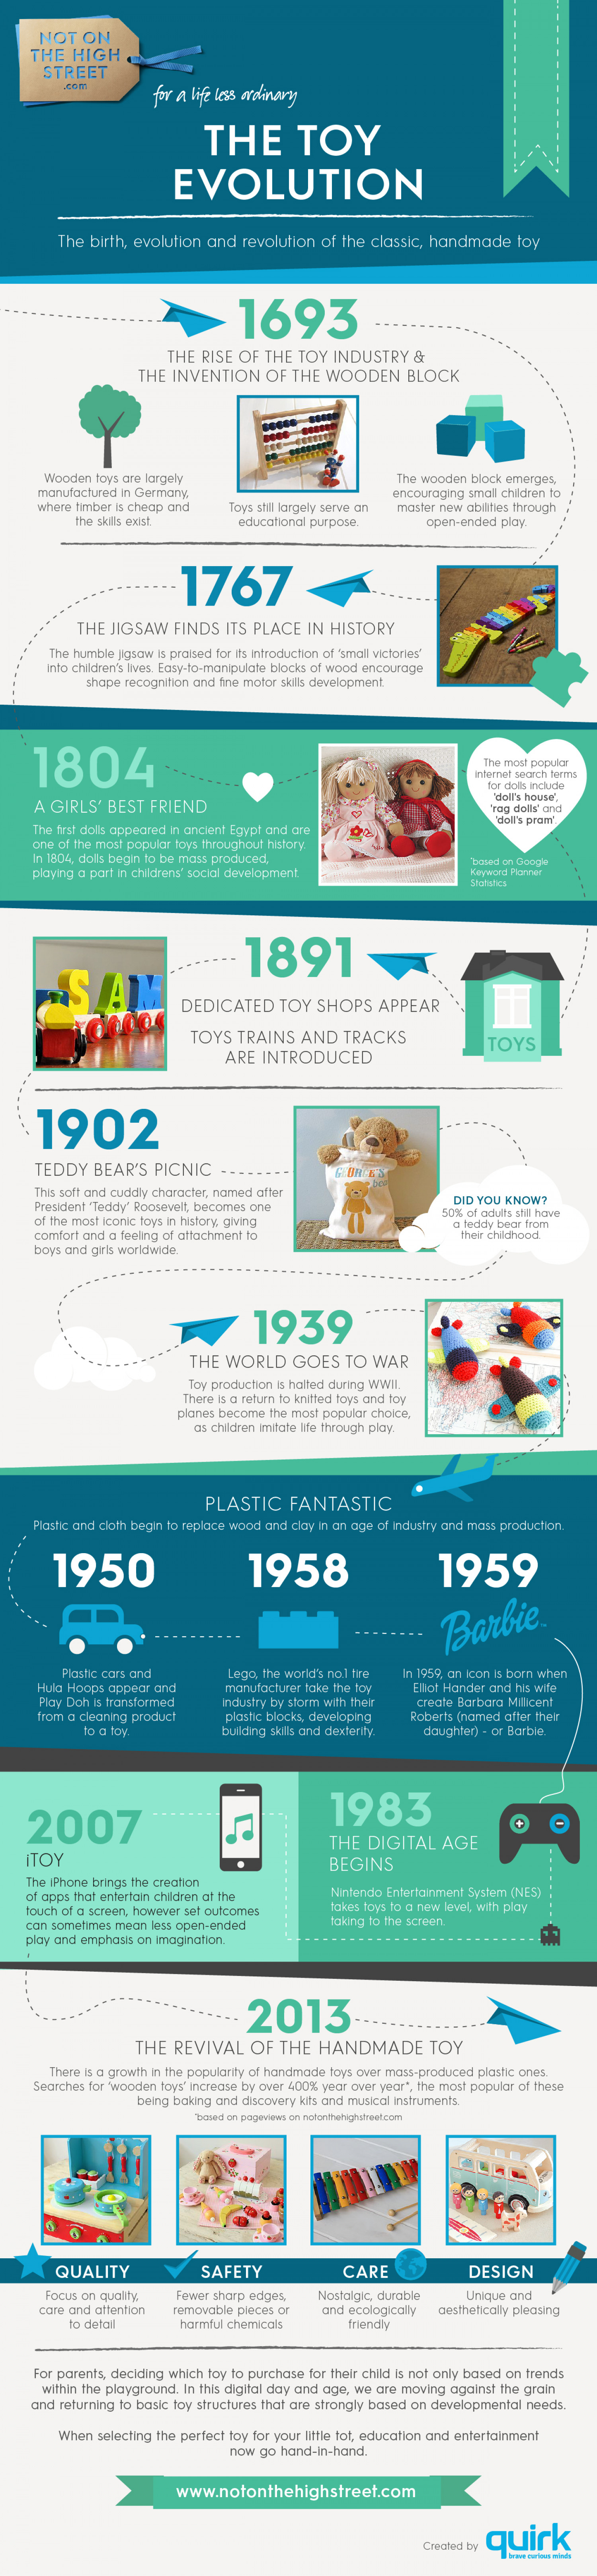 Wooden Toys are making a comeback Infographic